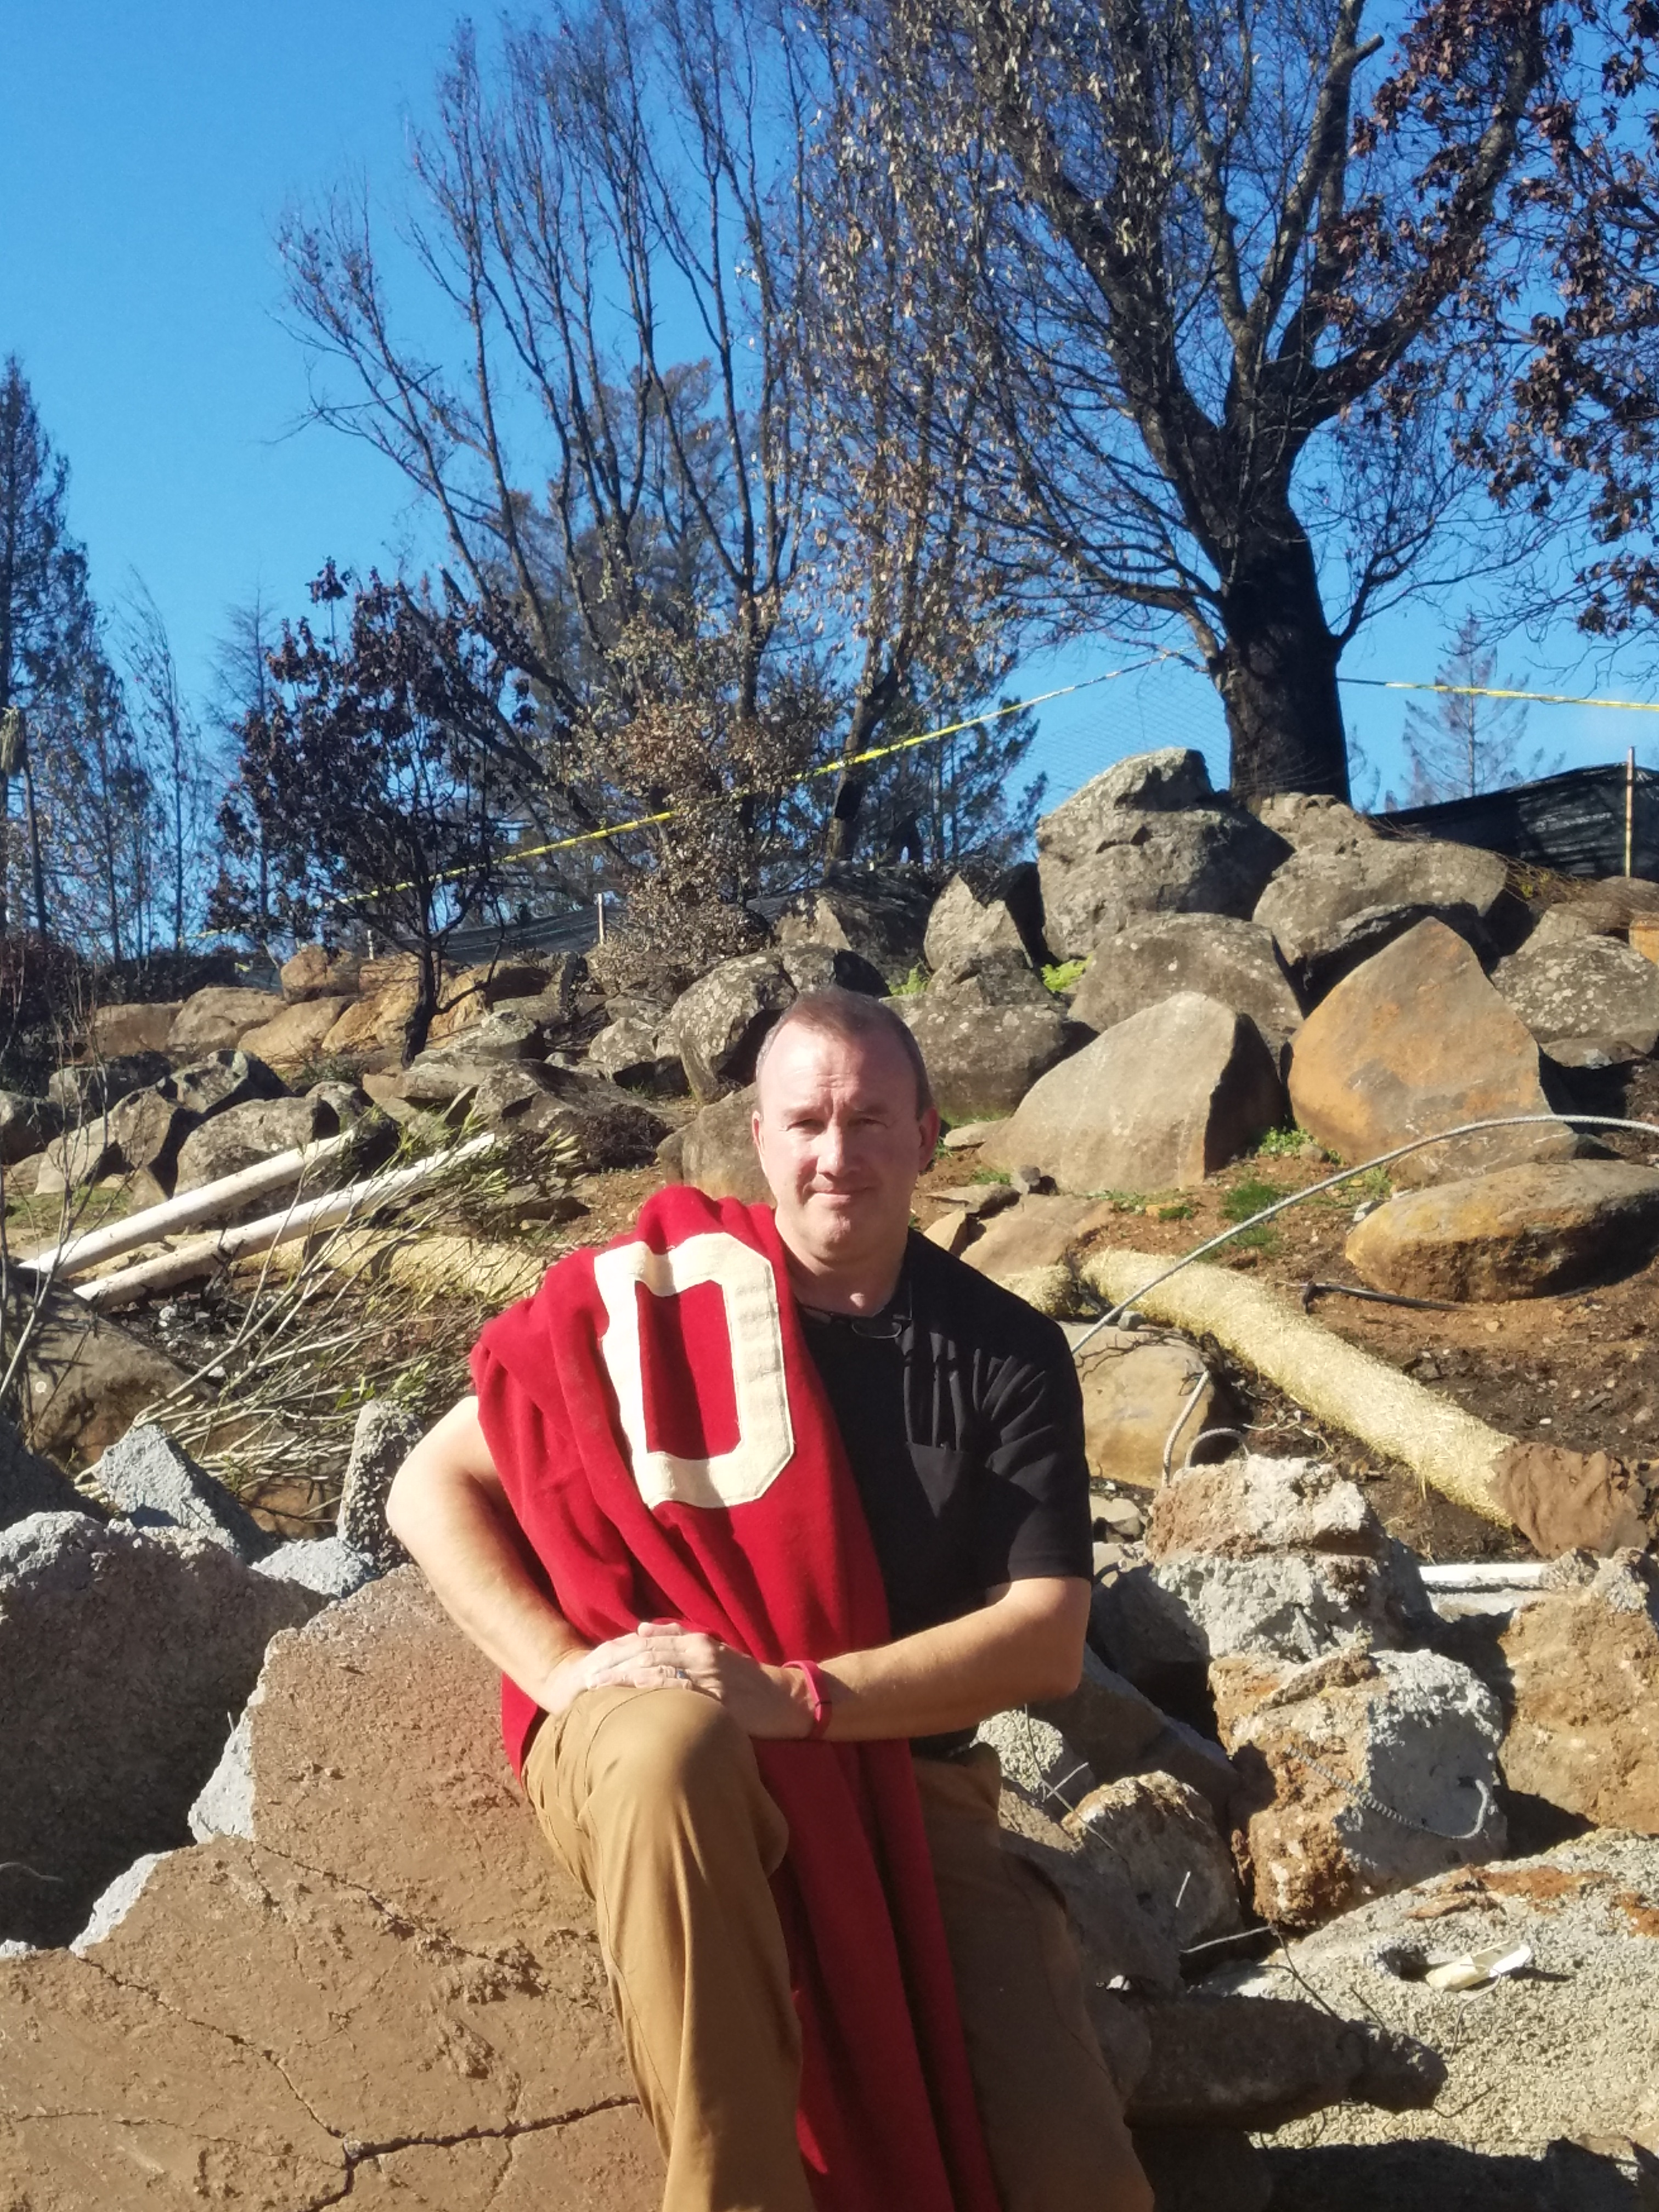 A Tubbs Fire Story:  Somethings Lost, Something Found